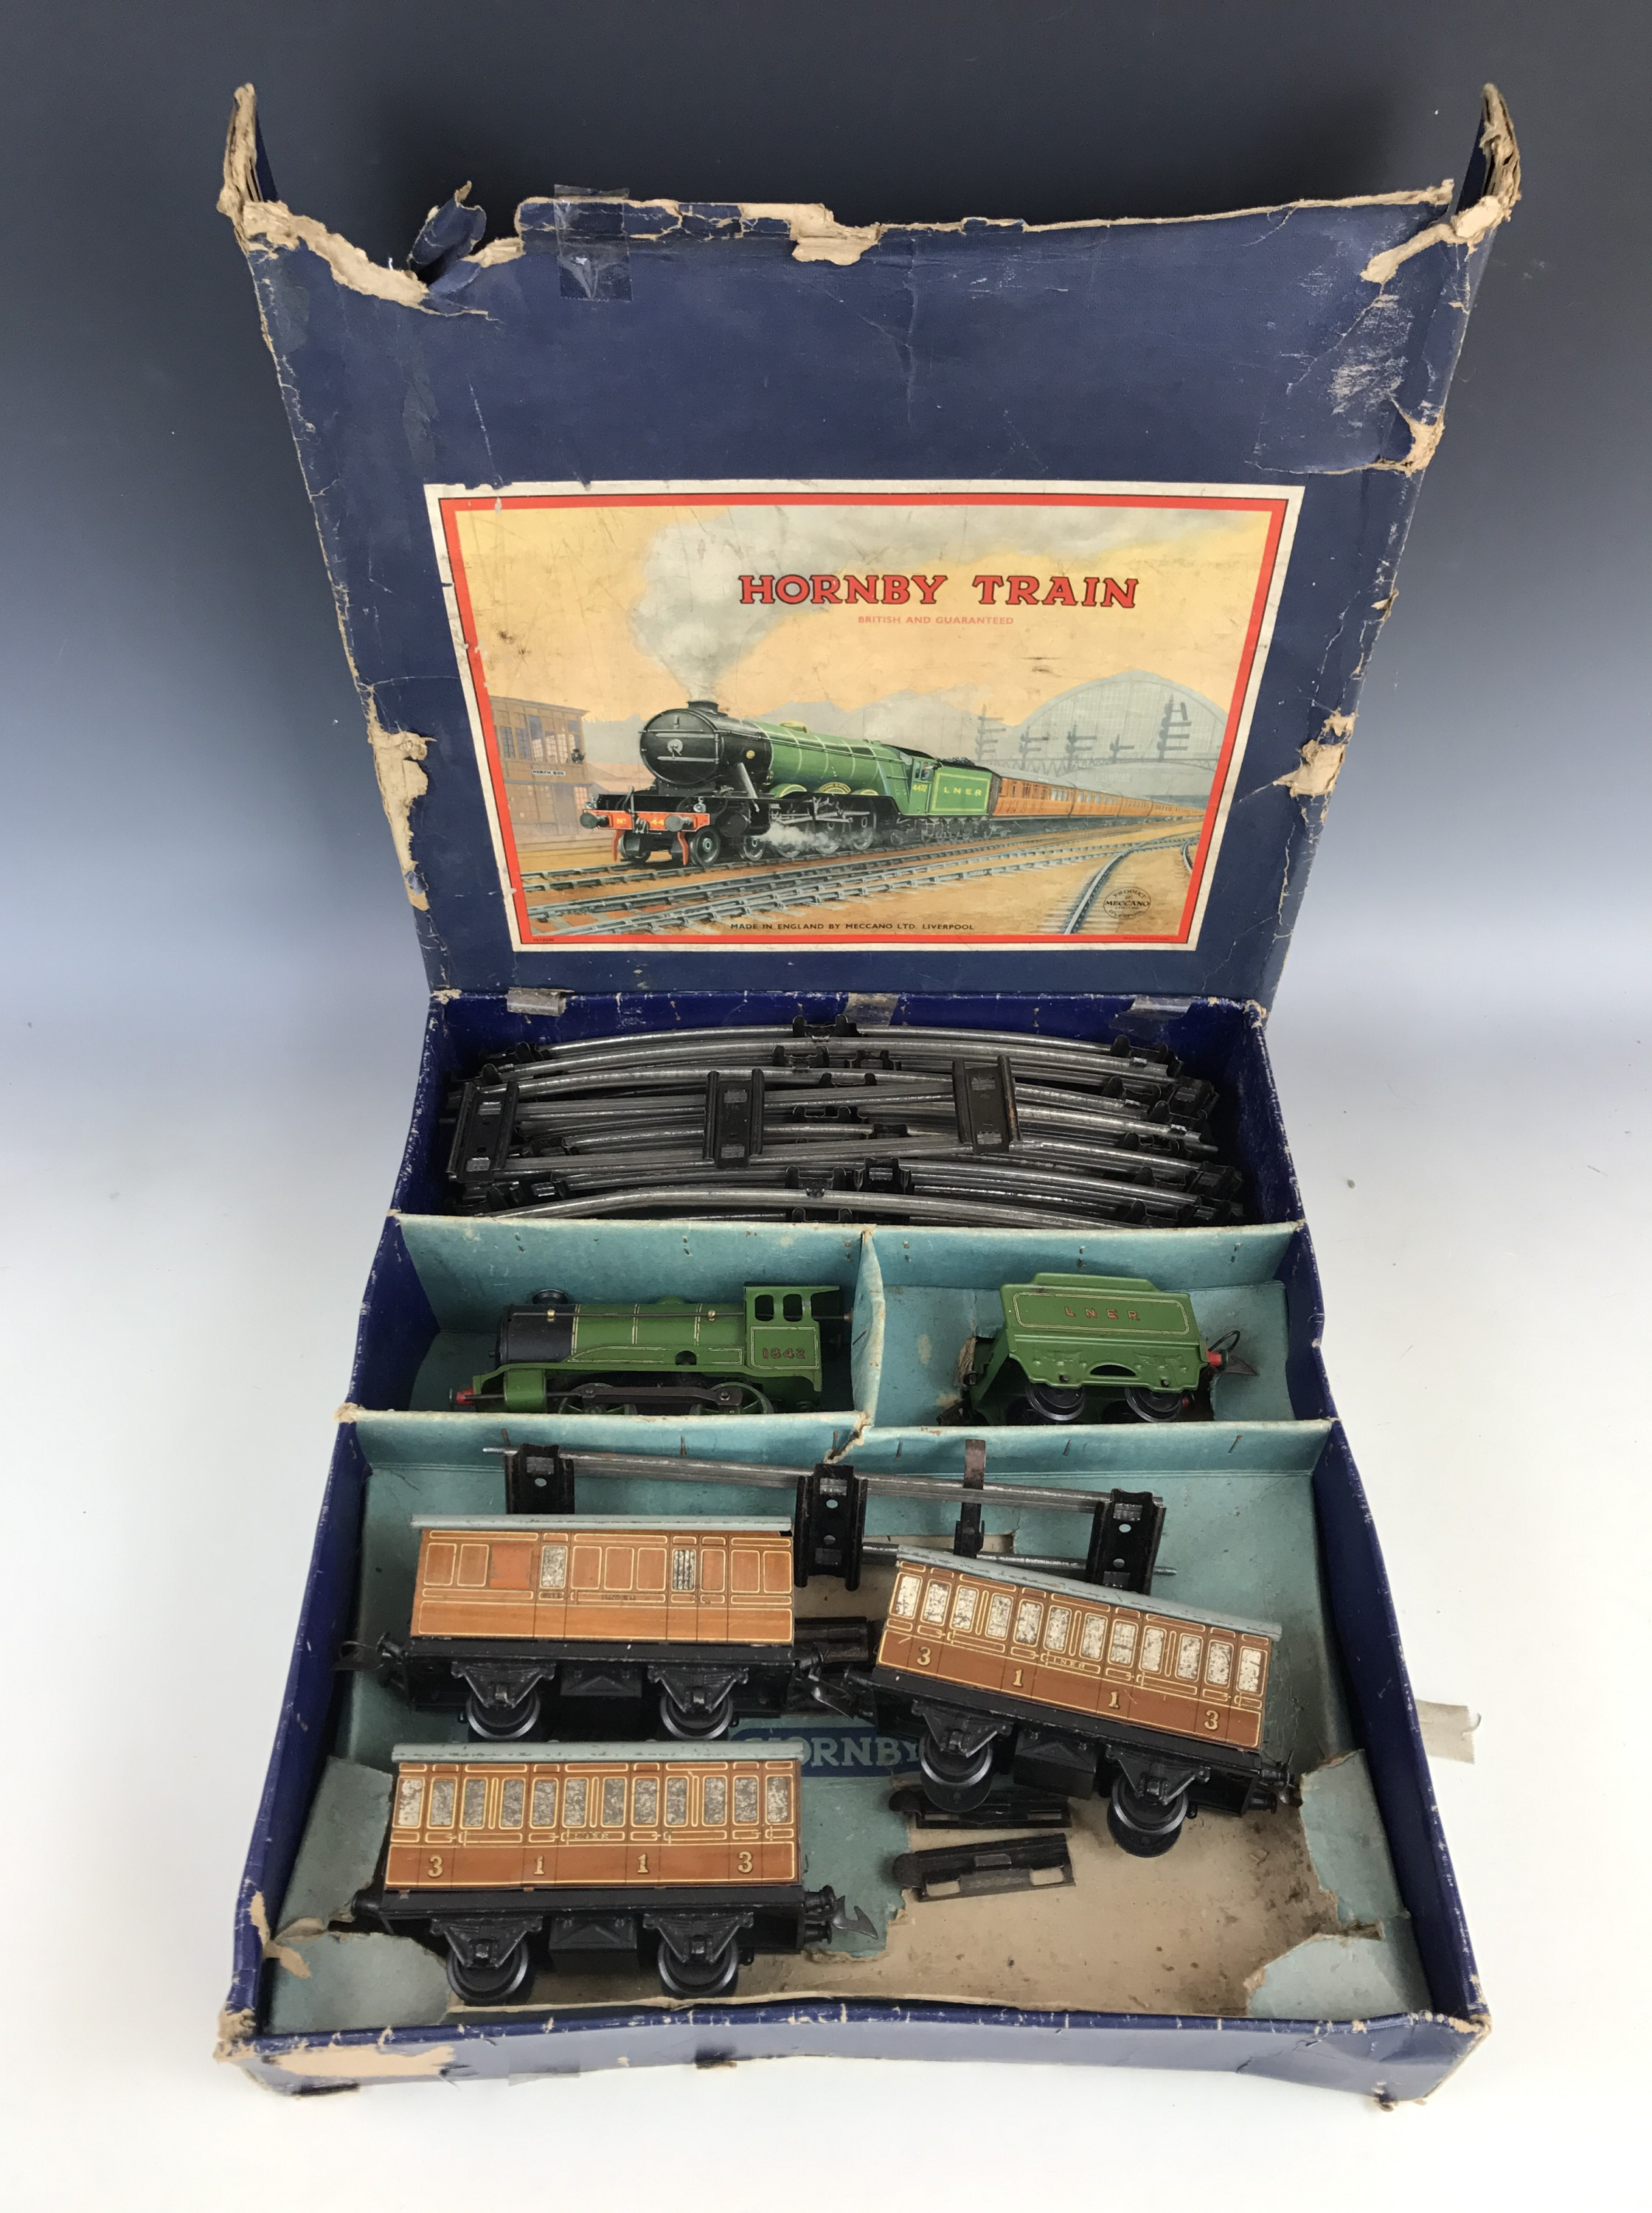 Lot 44 - A Hornby clockwork O Gauge No. 501 Passenger train set, having 1842 LNER 0-4-0 locomotive and tender